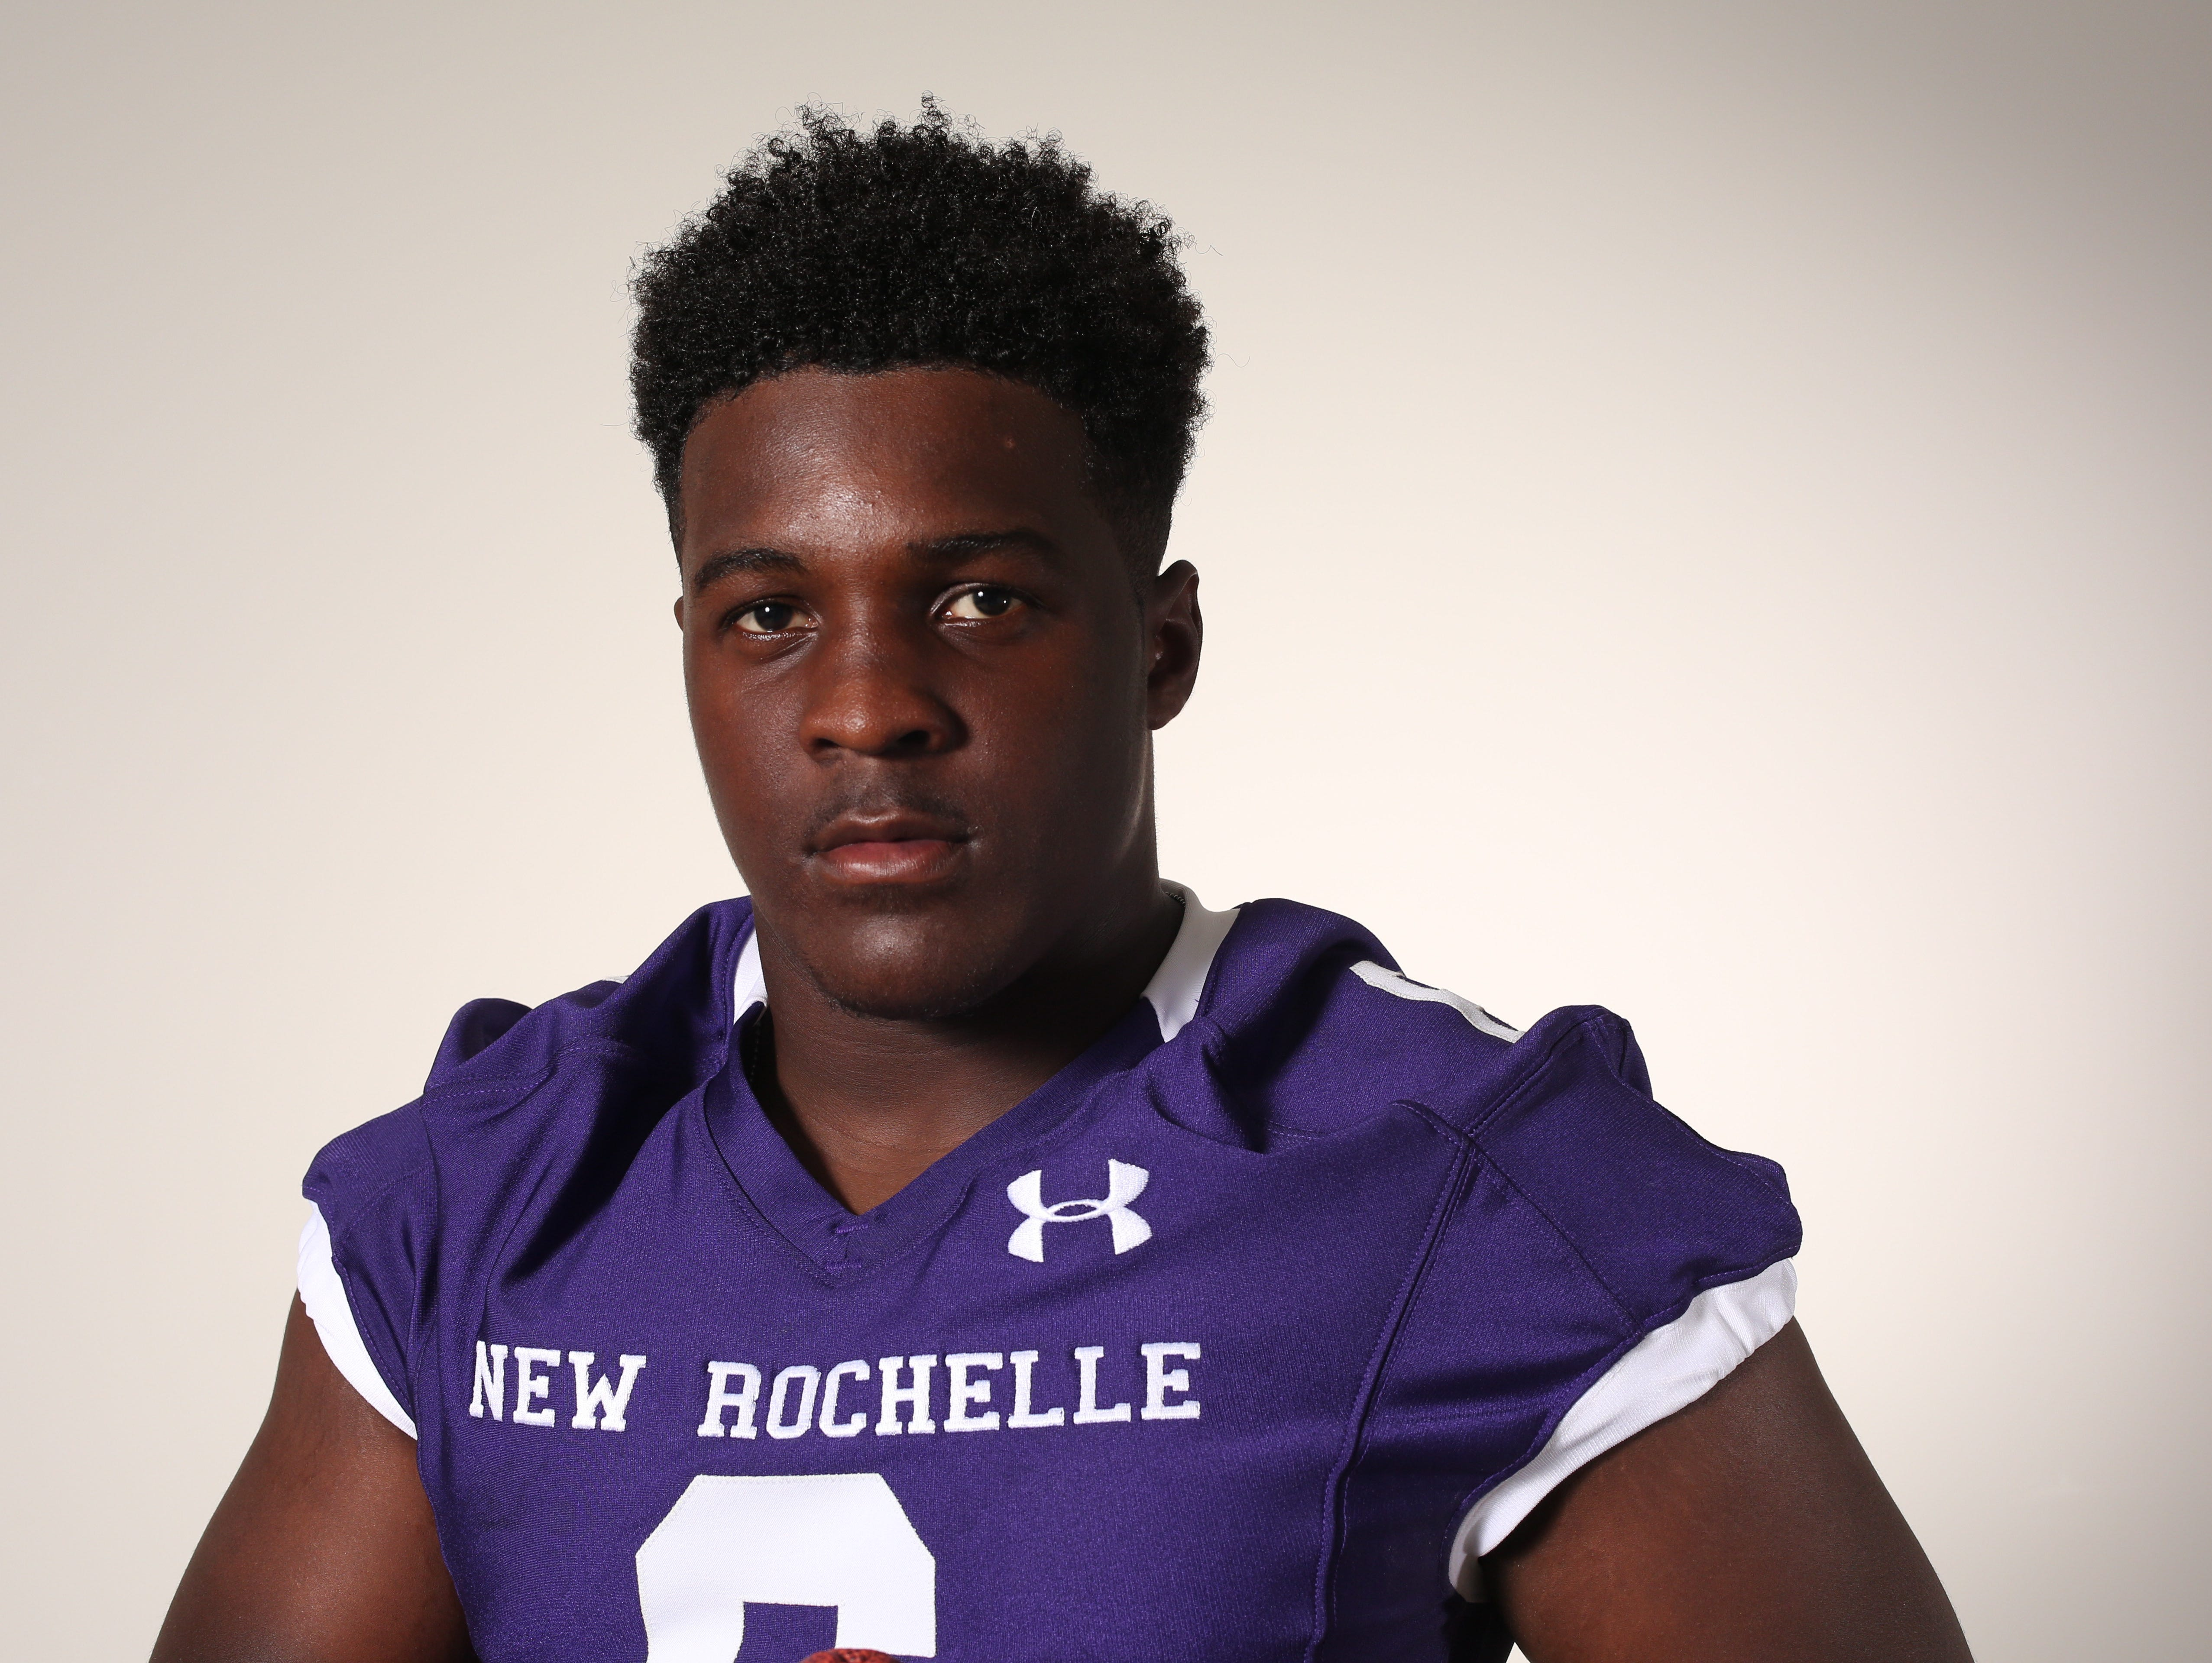 Jared Baron, a running back and inside linebacker with the New Rochelle High School football team, photographed Aug. 19, 2016.